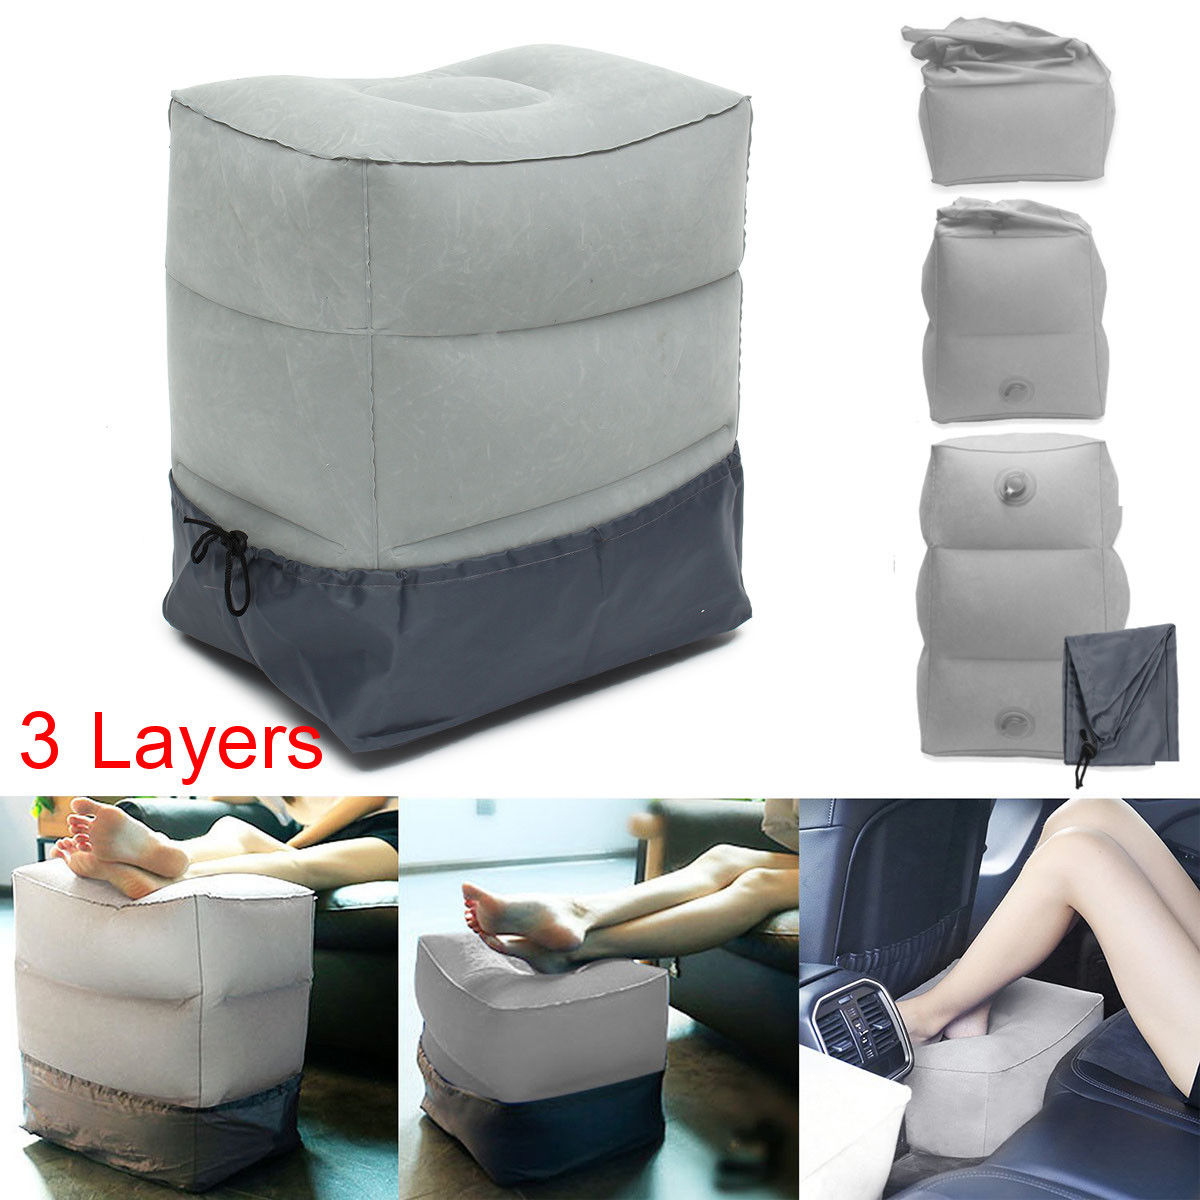 2018 Newest Hot Useful Inflatable Portable Travel Footrest Pillow Plane Train Kids Bed Foot Rest Pad9